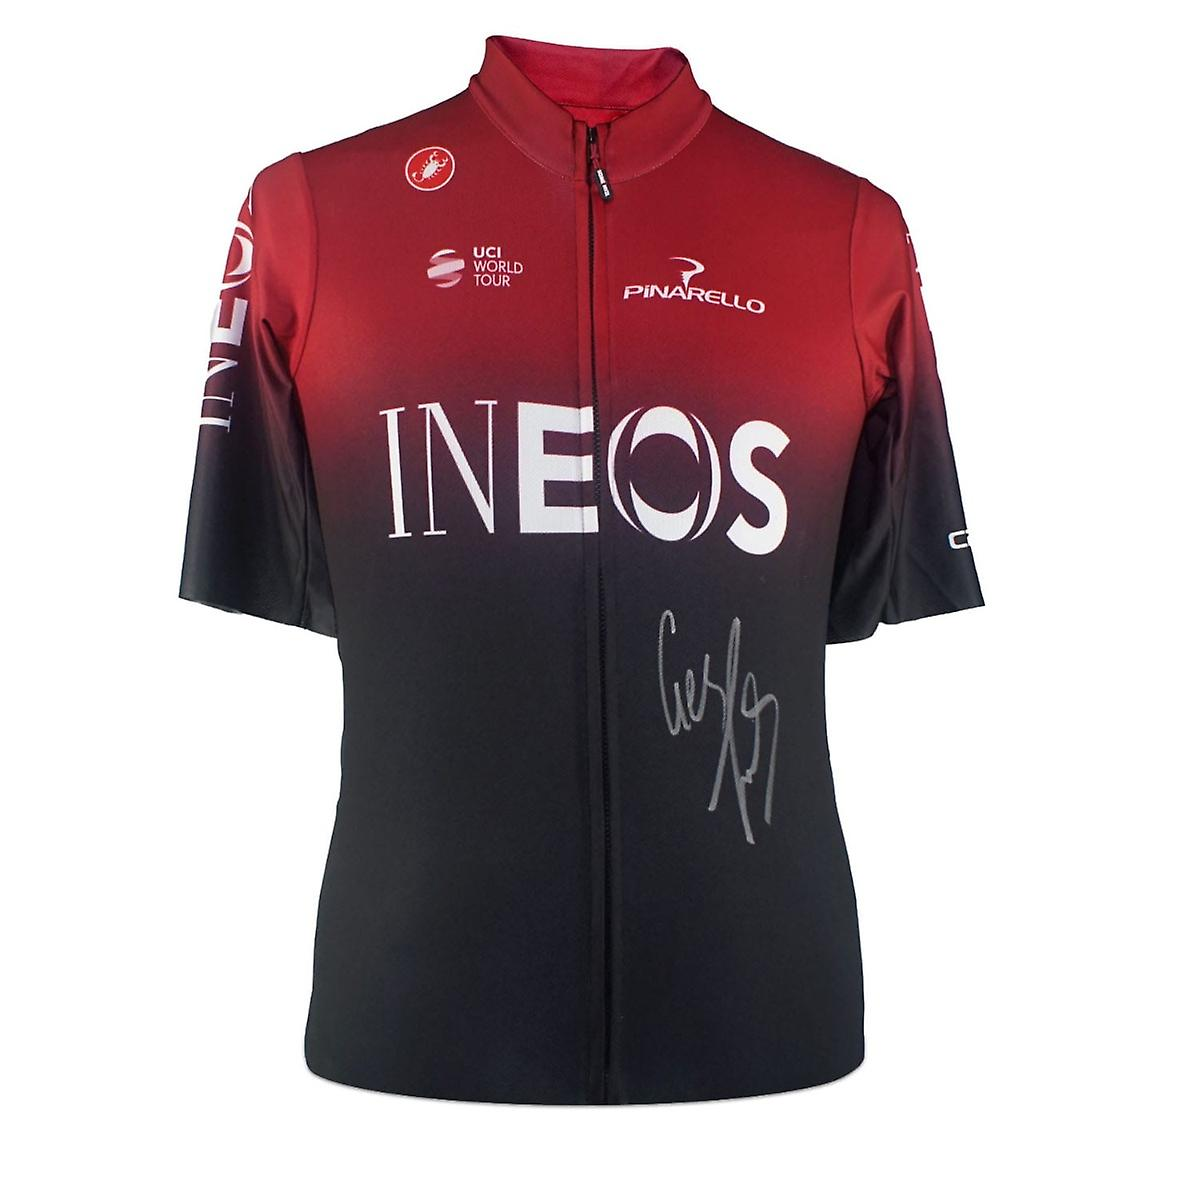 Geraint Thomas Signed Team Ineos 2019 Jersey In Gift Box